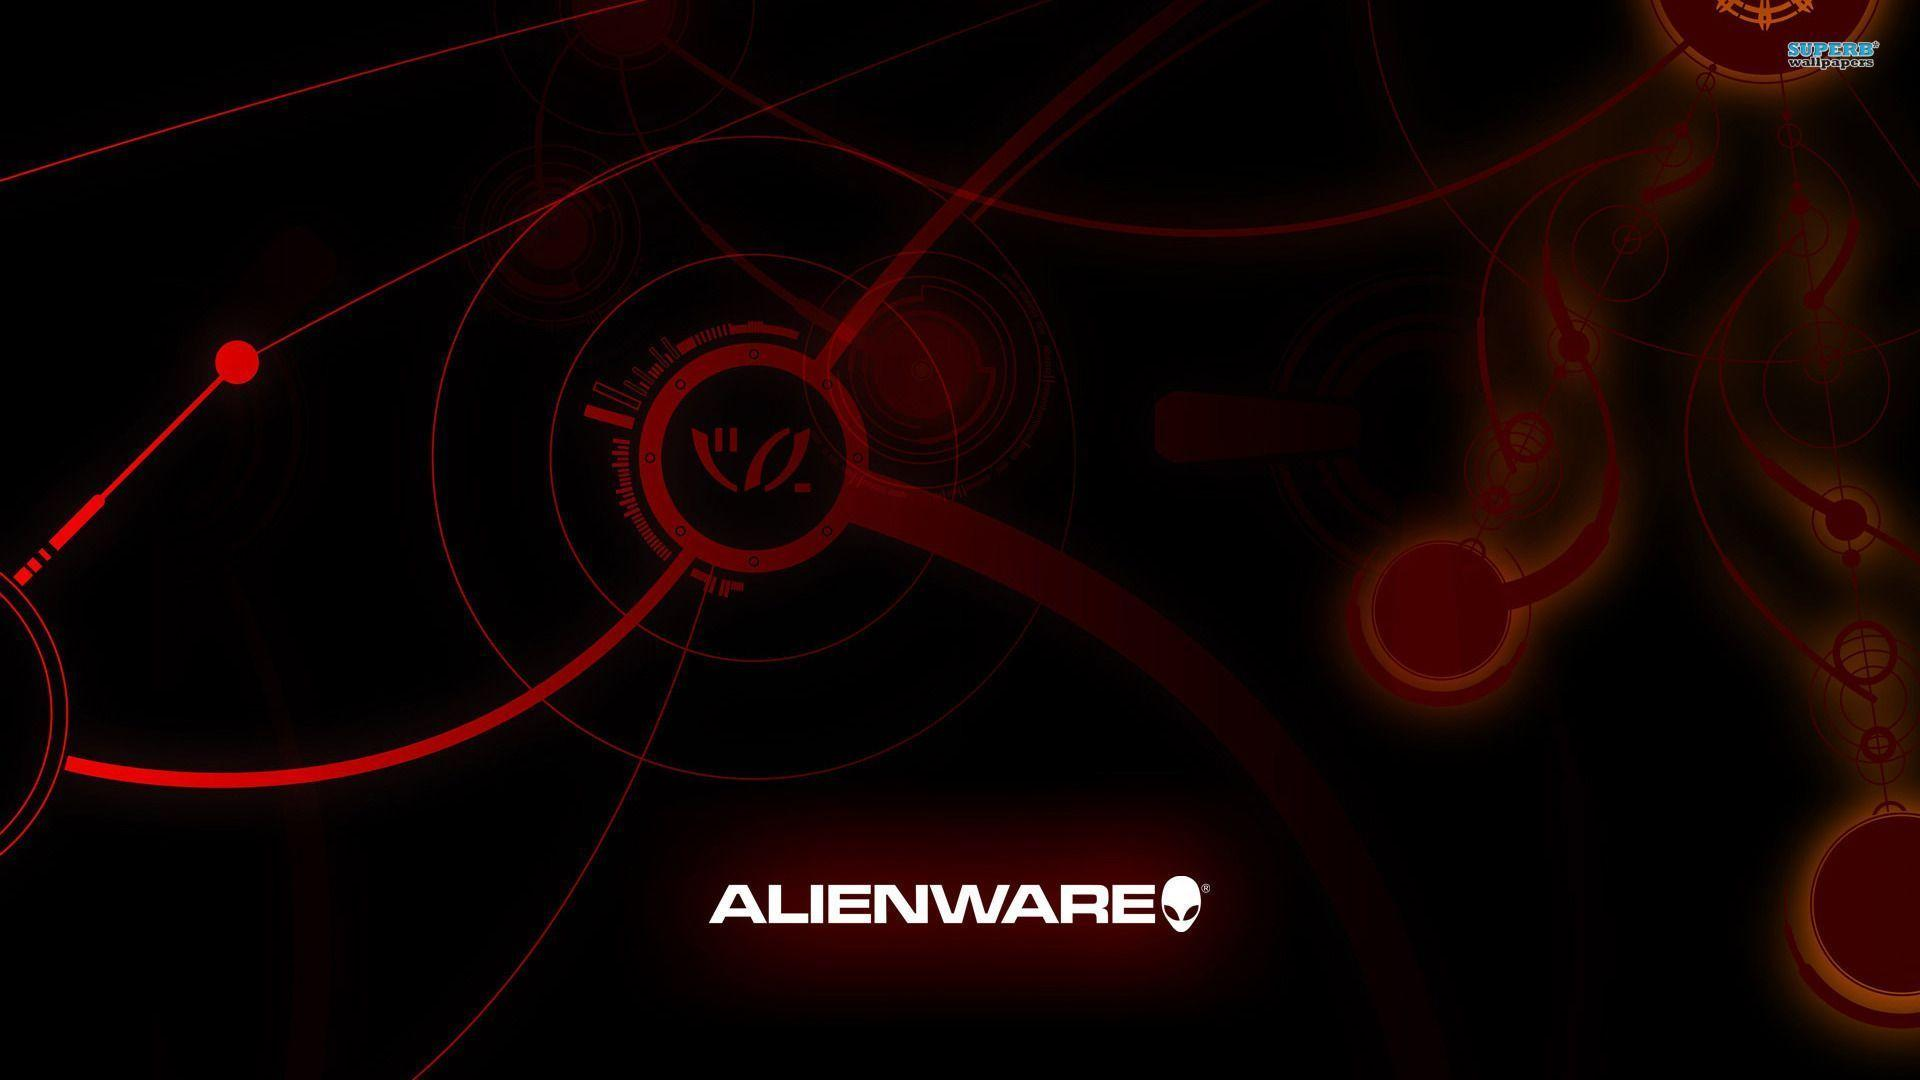 Alienware wallpaper 1920x1080 - Download Best HD Desktop .